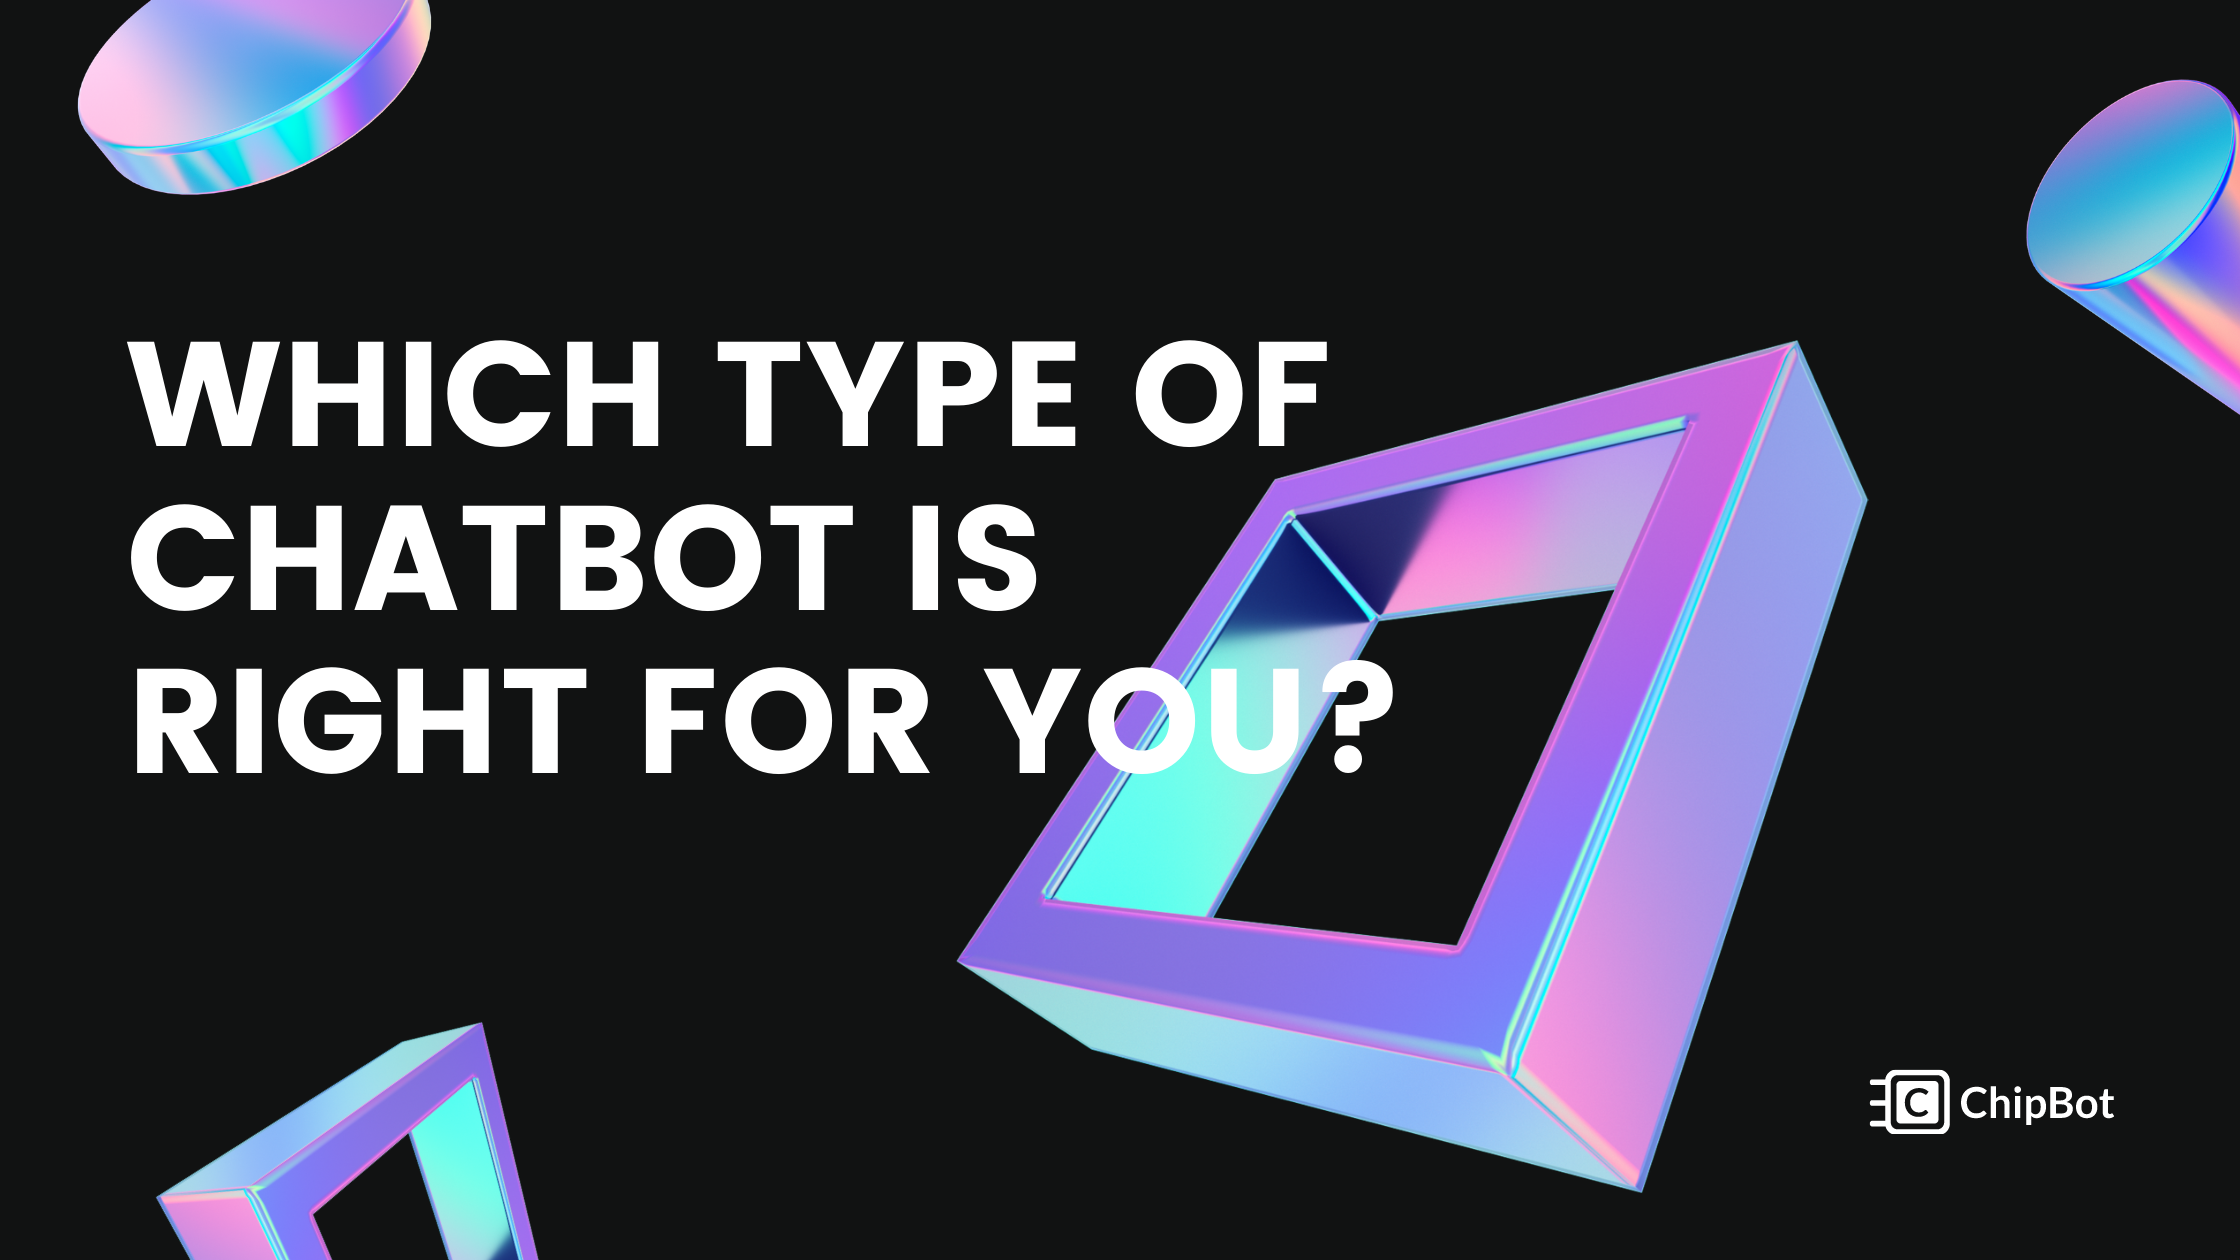 How to Distinguish Which Type of Chatbot is Right For You